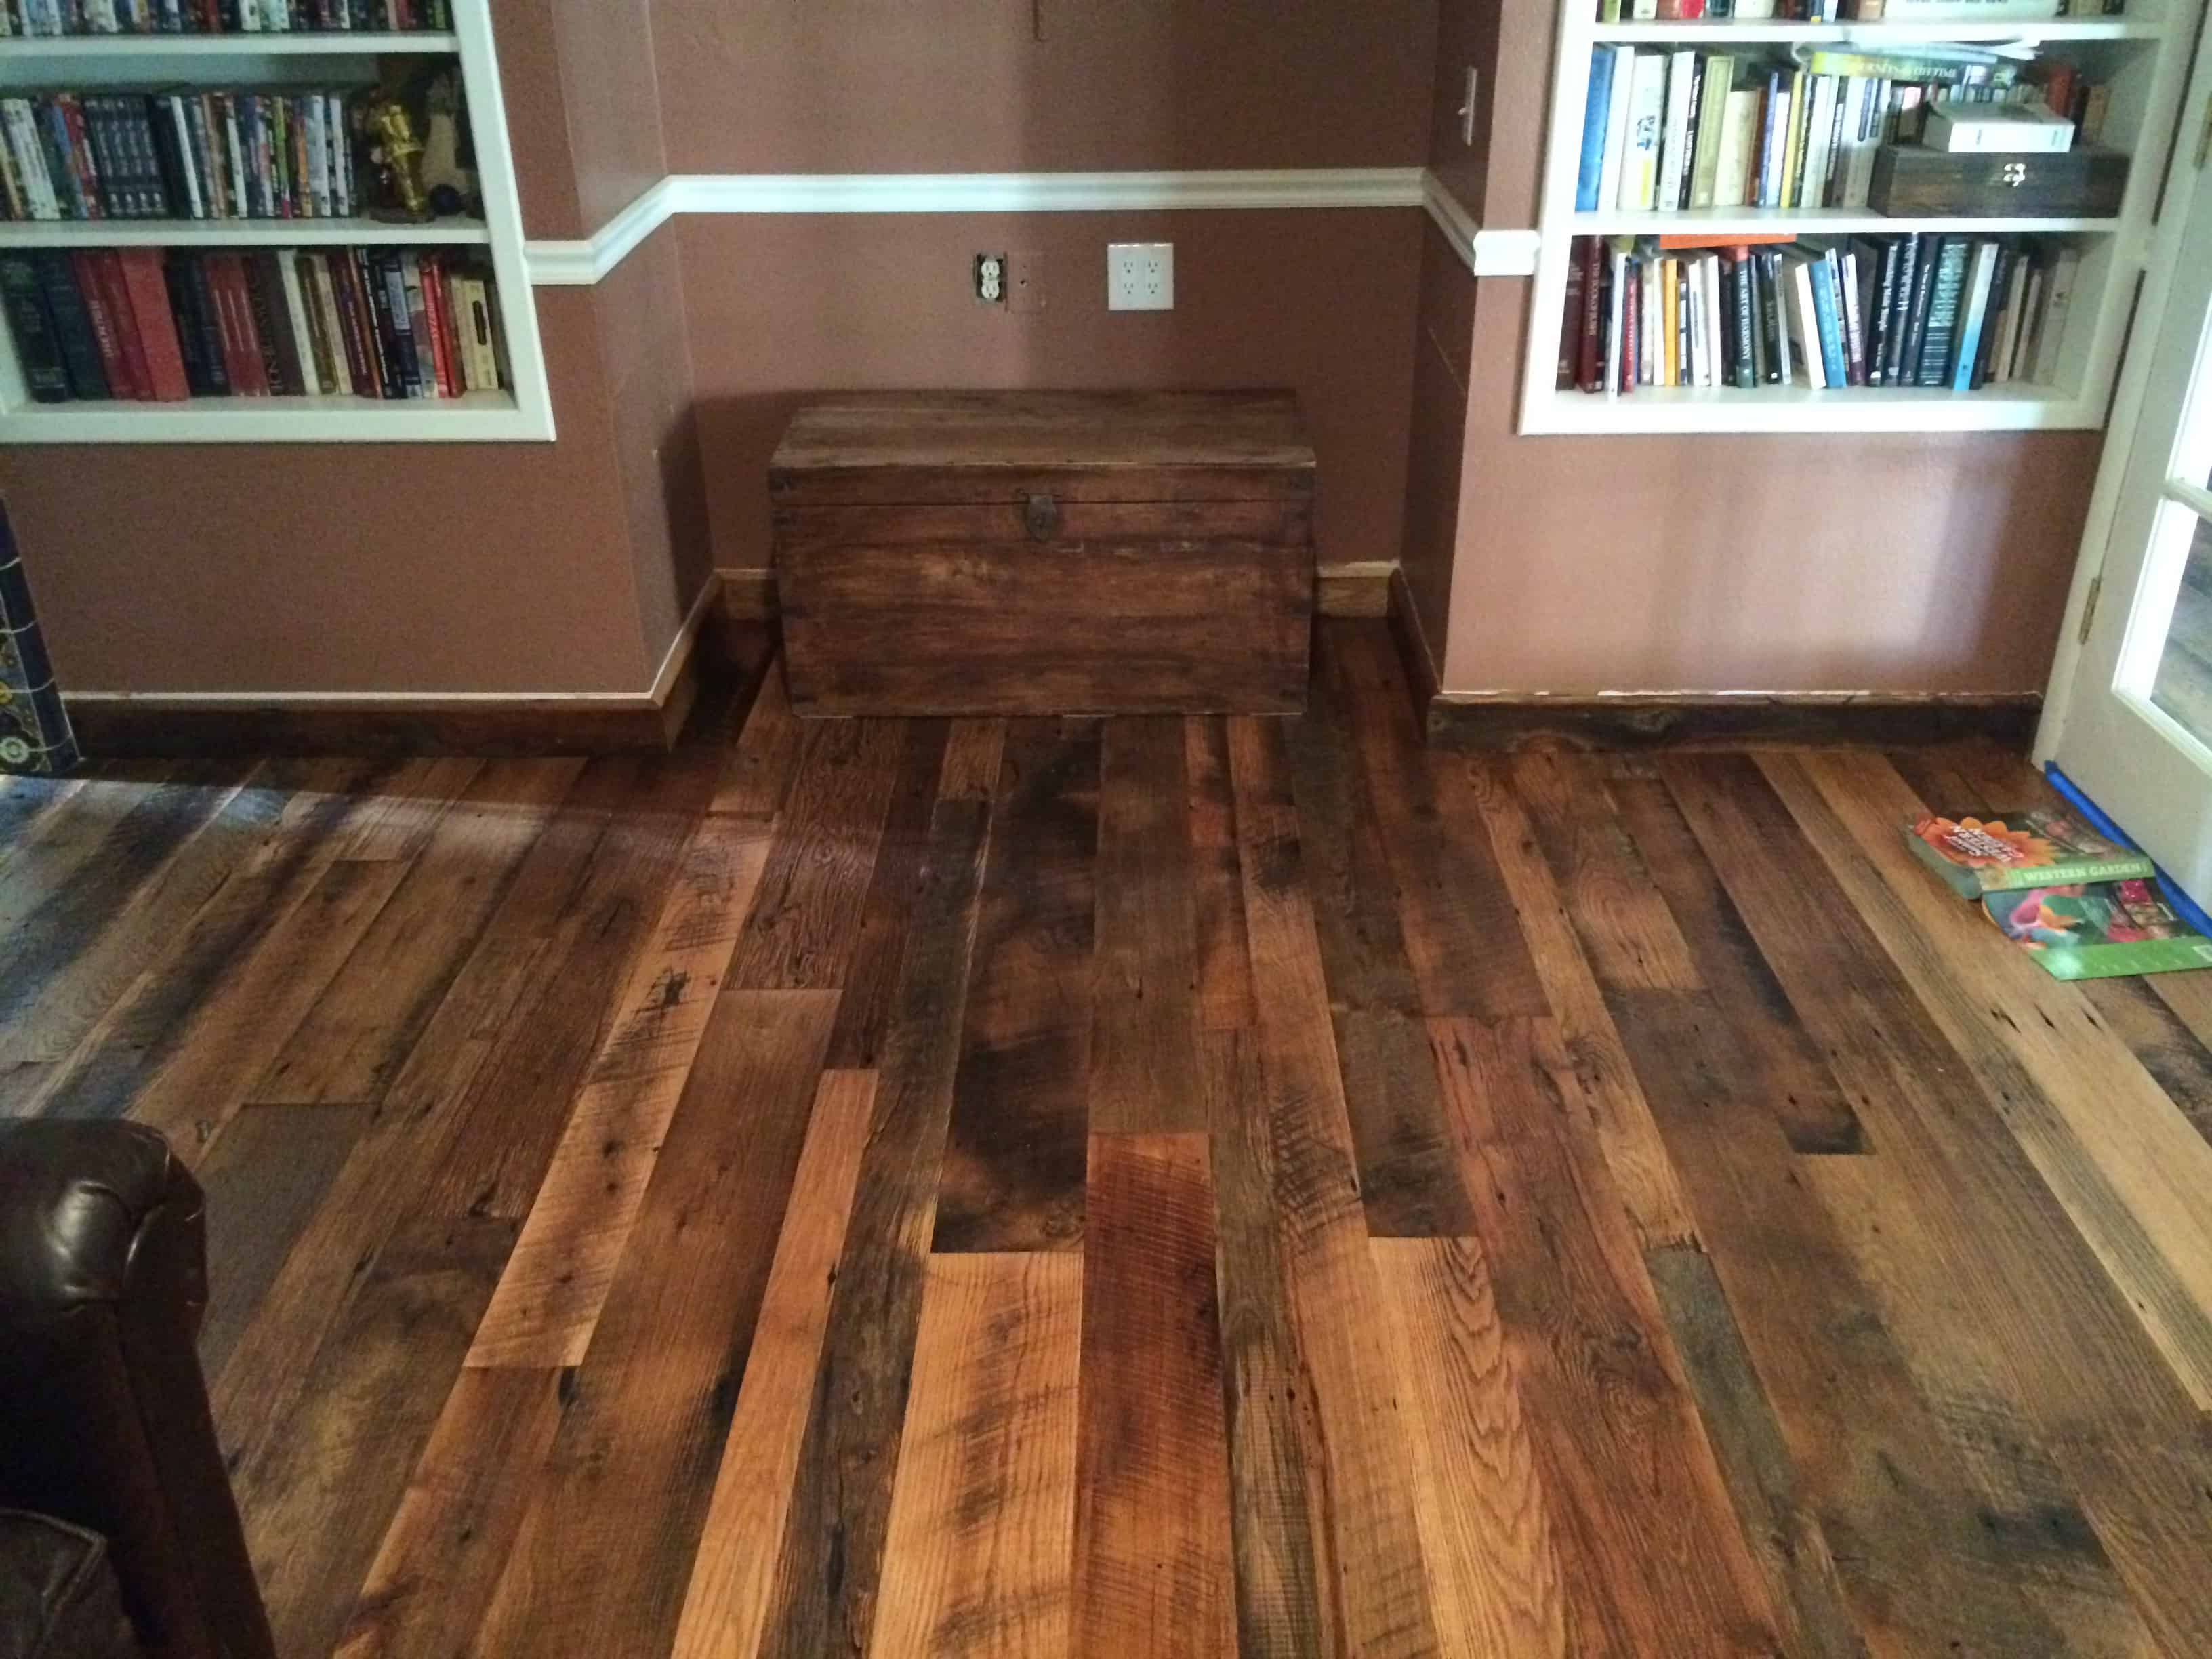 hardwood flooring make your wood floors perform beautifully in your home or office! VOXBPWS